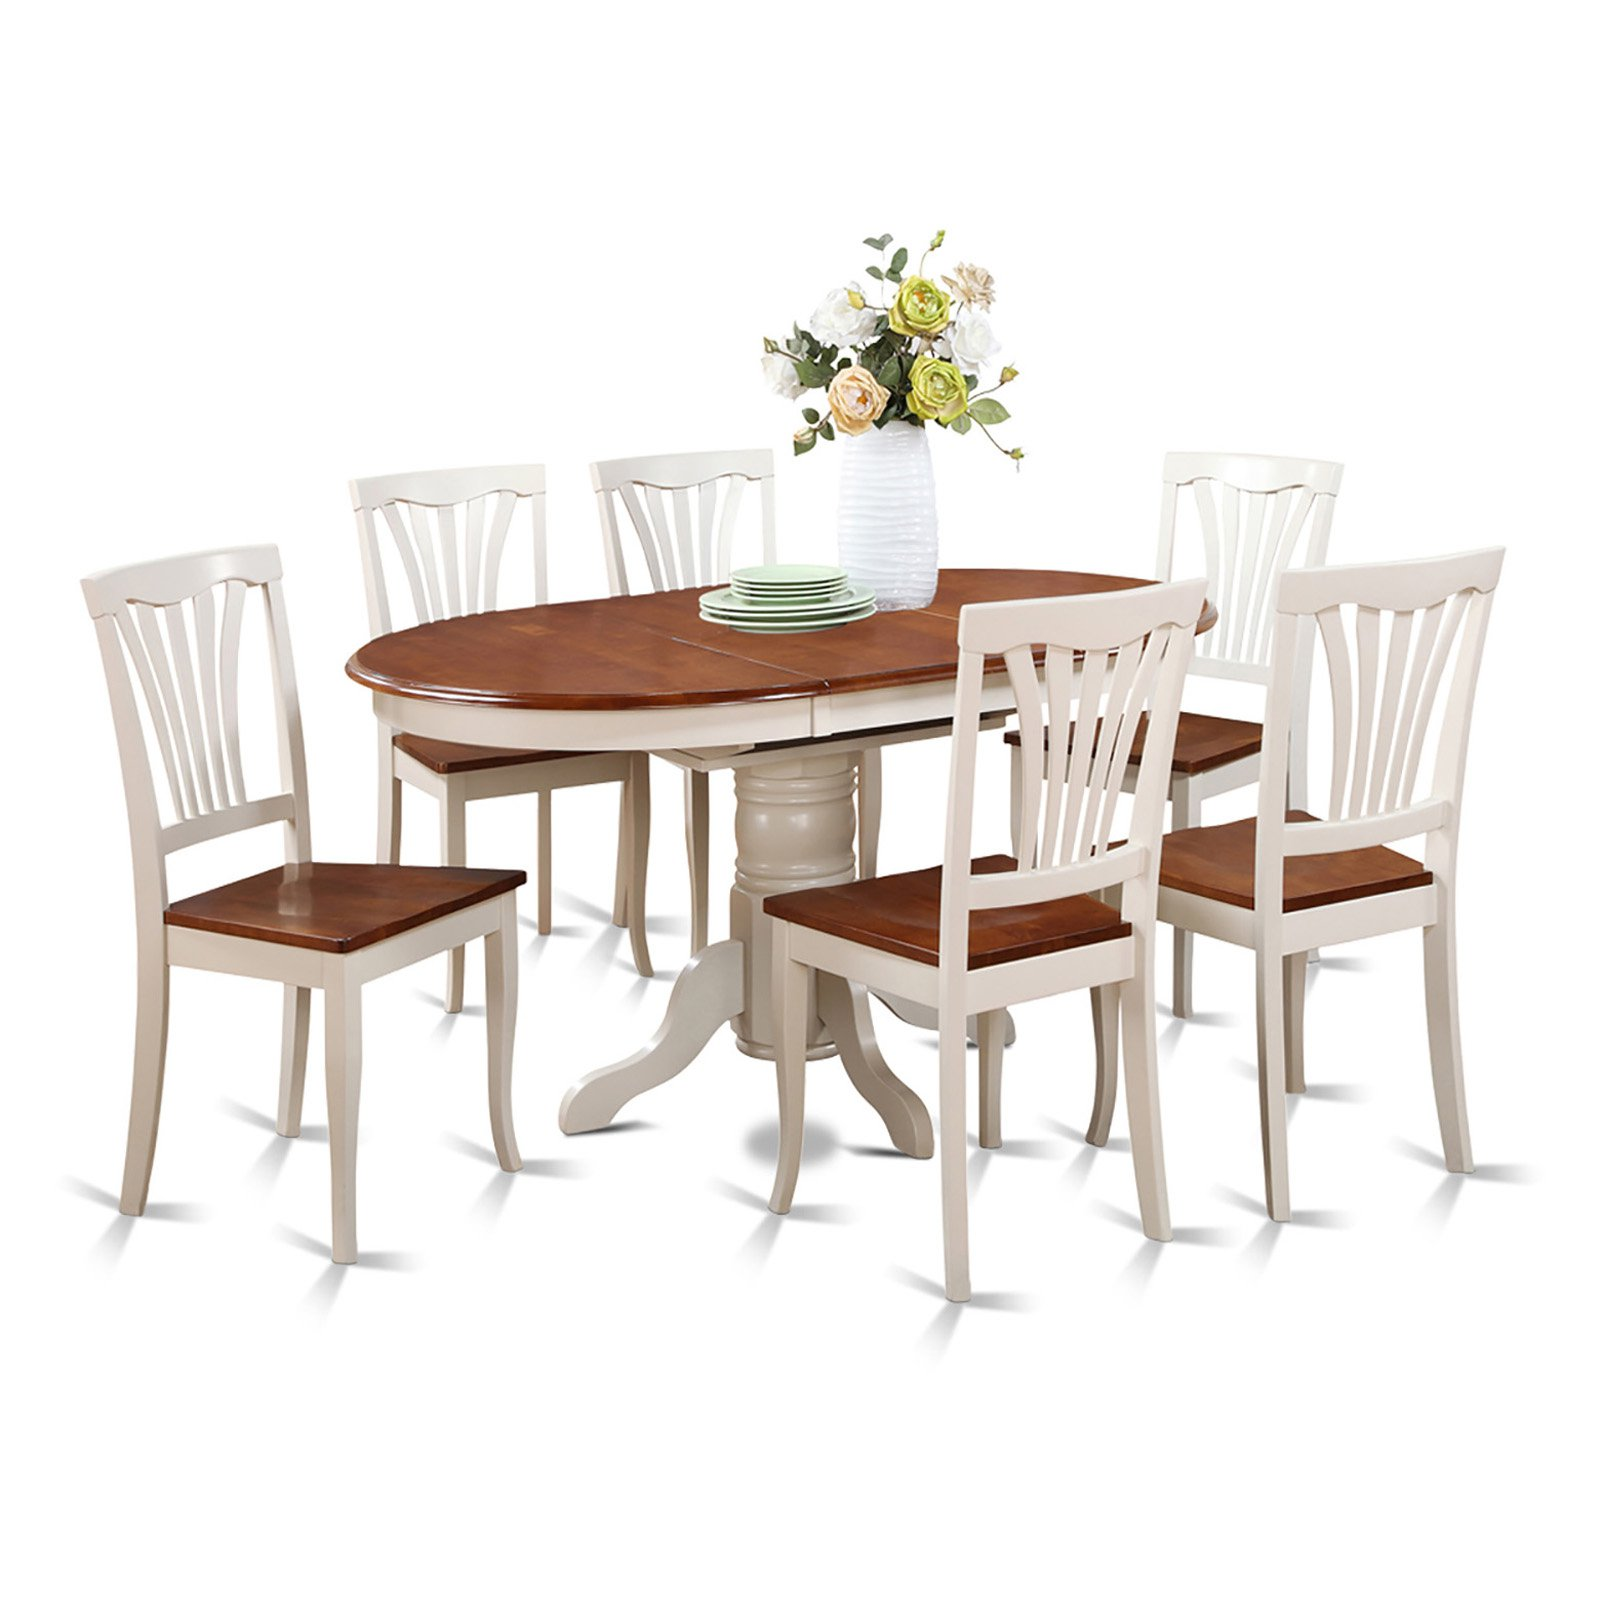 East West Furniture Avon 7 Piece Oval Pedestal Dining Table Set In White  And Cherry